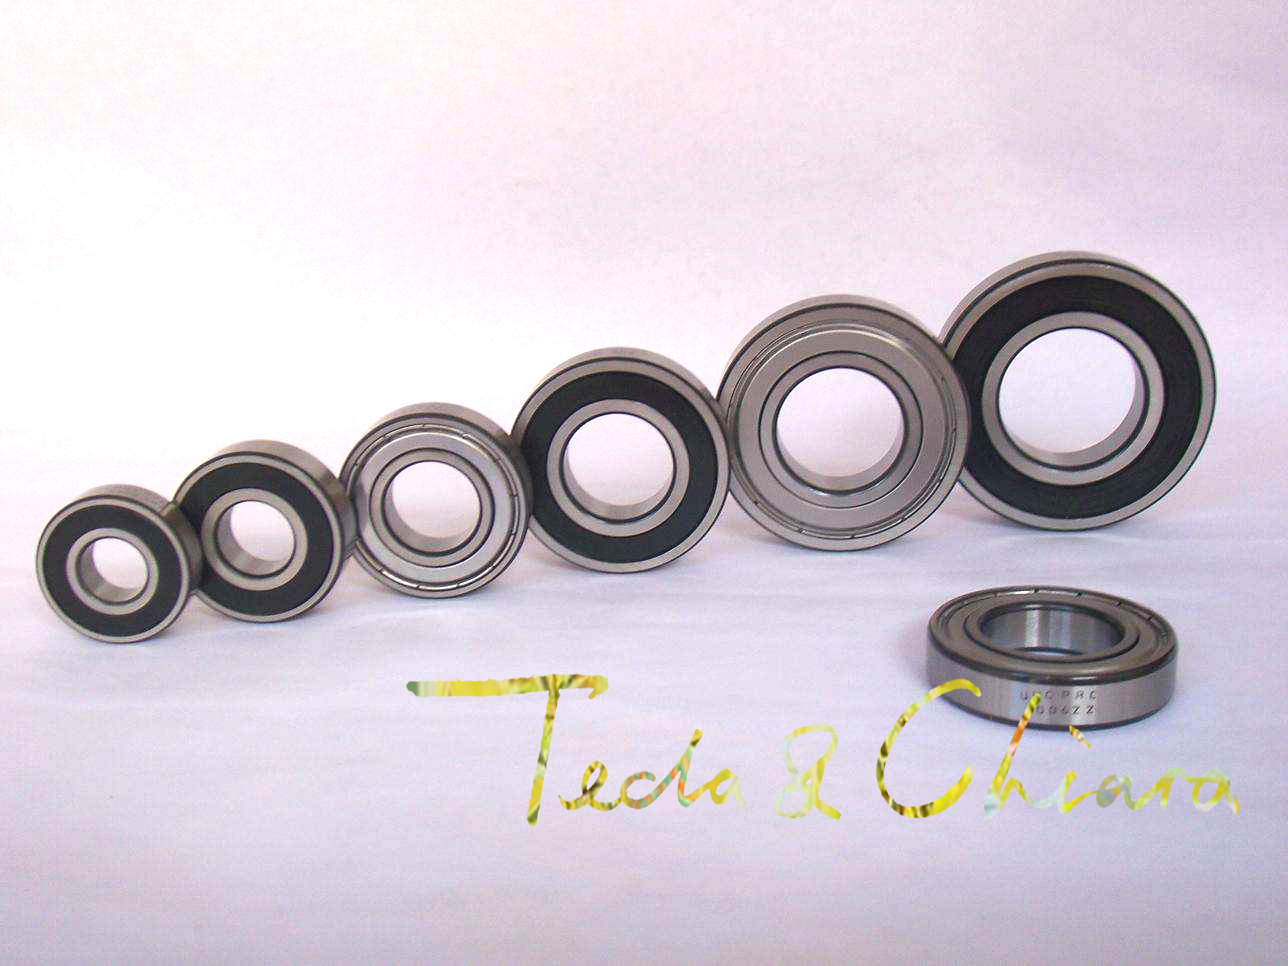 6002 6002ZZ 6002RS 6002-2Z 6002Z 6002-2RS ZZ RS RZ 2RZ Deep Groove Ball Bearings 15 x 32 x 9mm High Quality диван 3le rs vl7217 47a z 08 kd5110